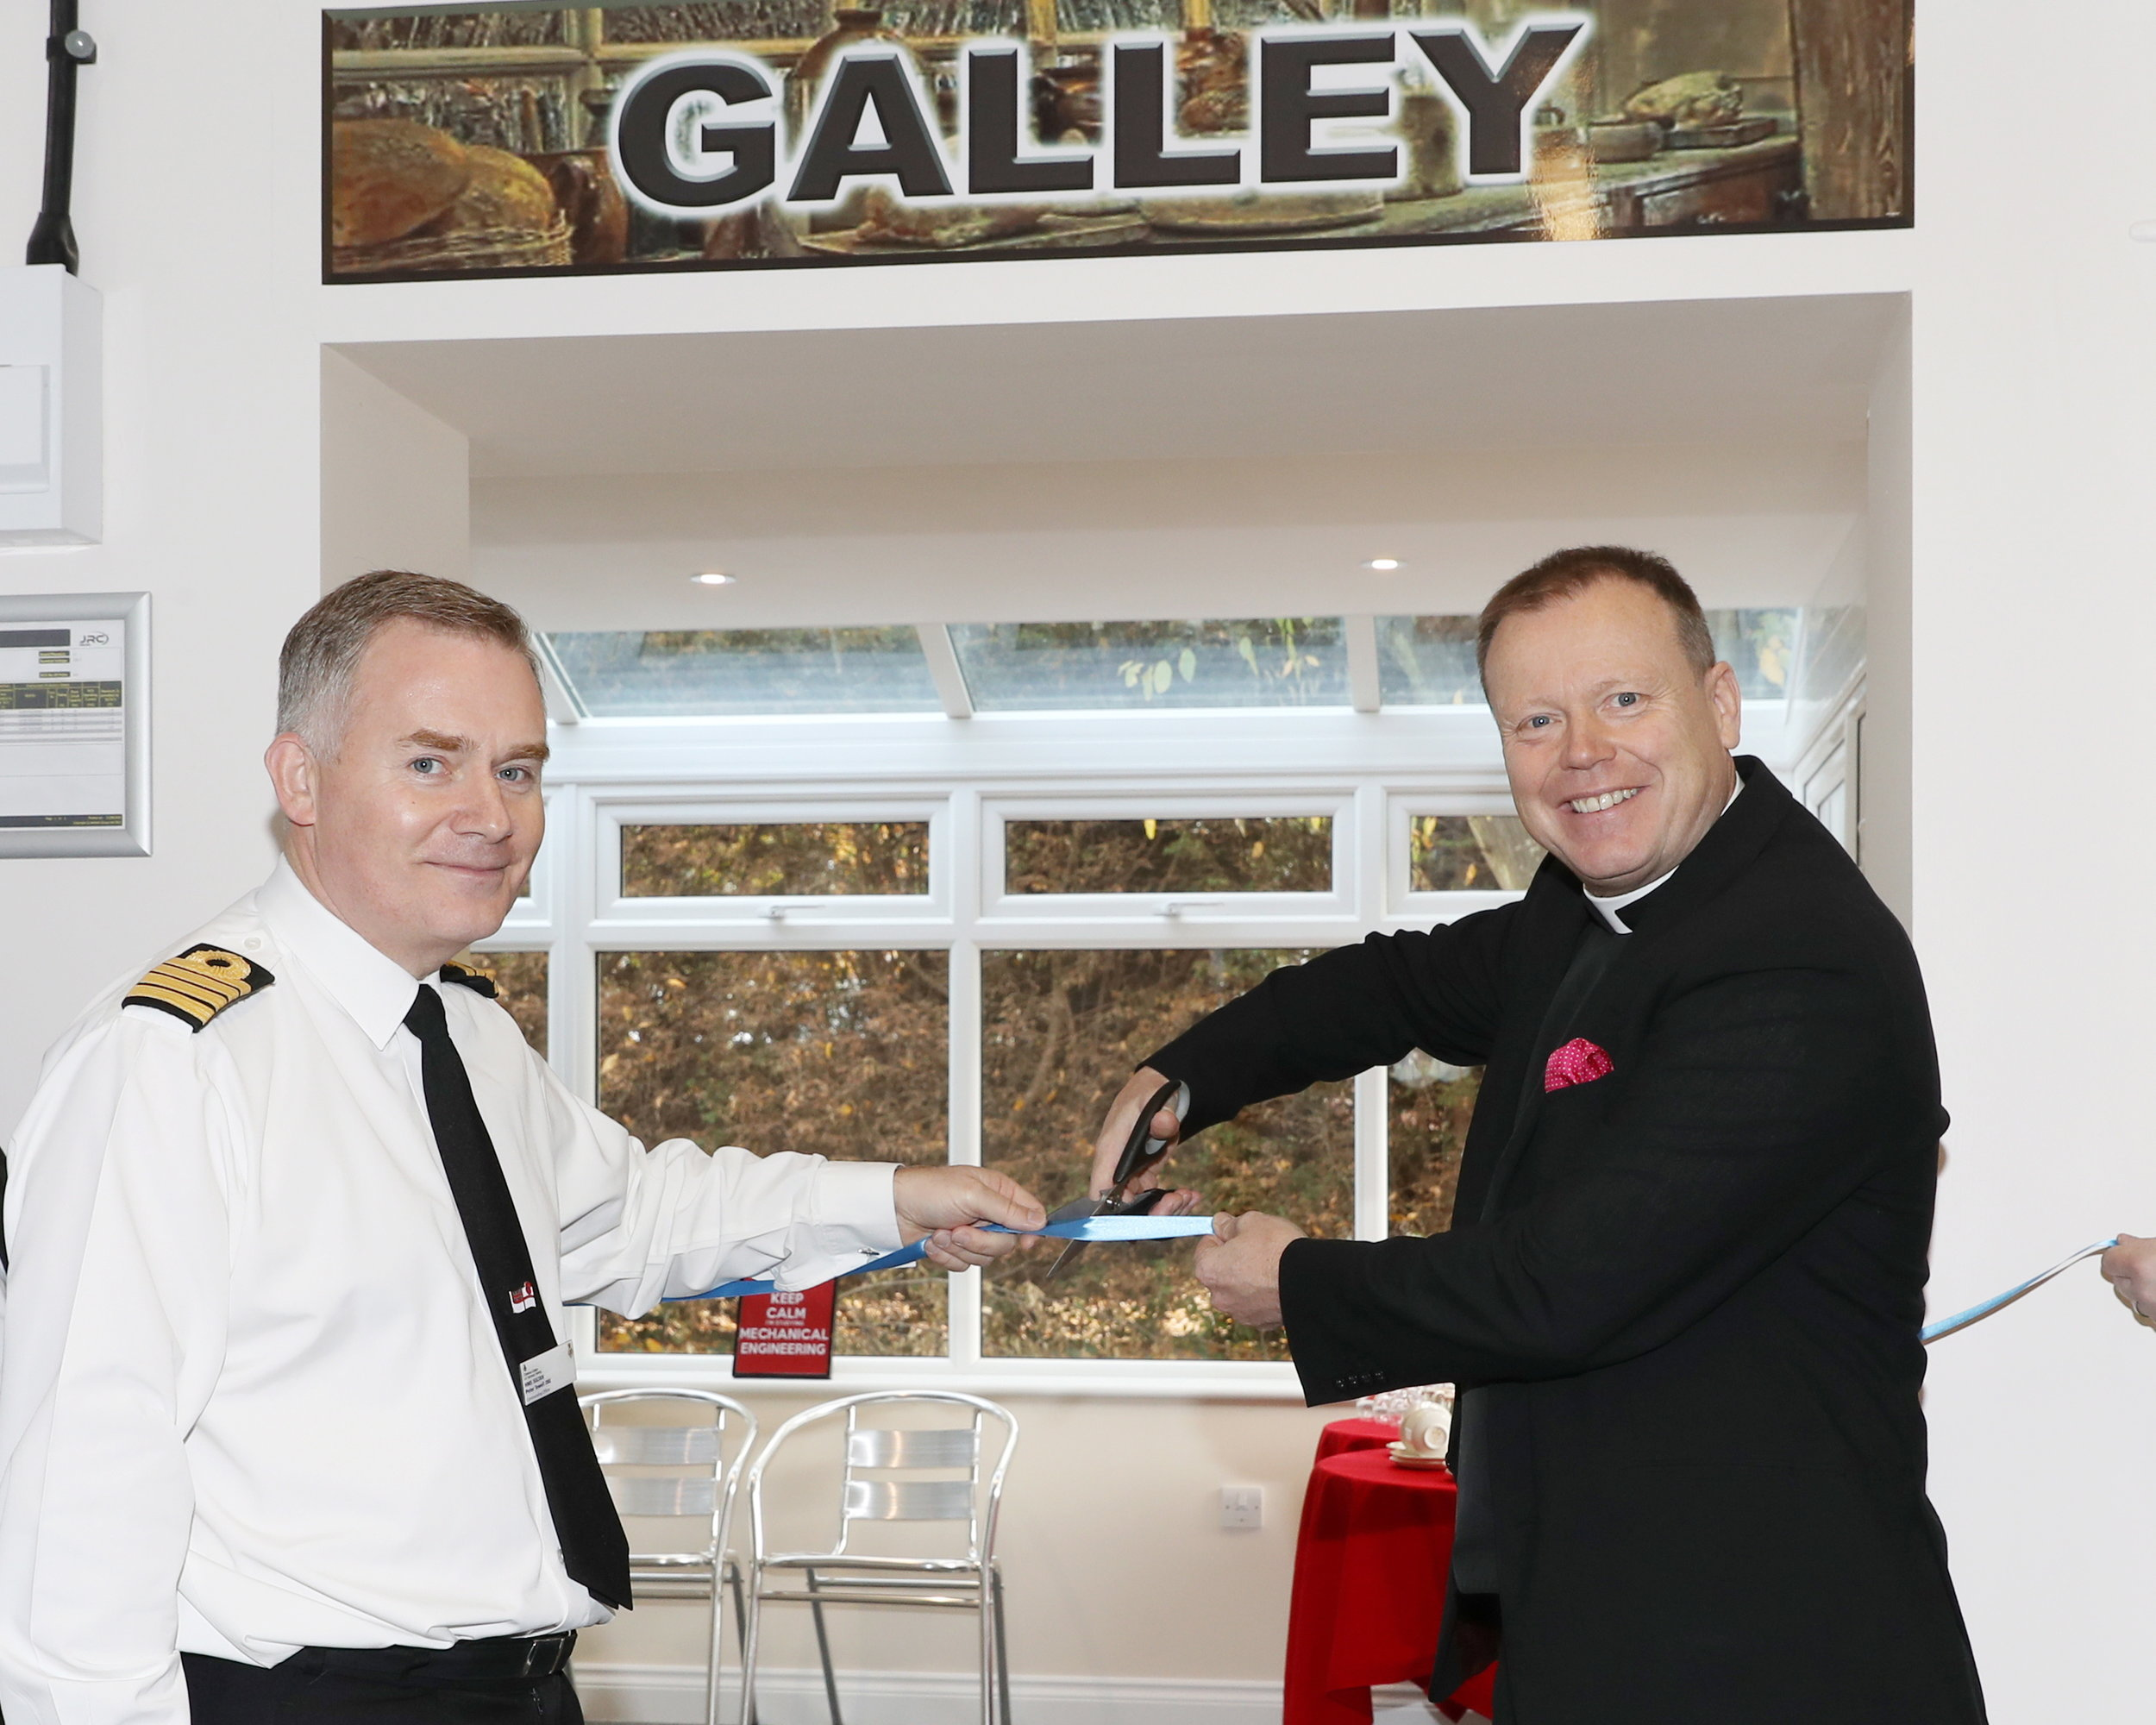 Captain Peter Towell, the Commanding Officer of HMS Sultan, assists Royal Navy Chaplain of the Fleet, The Venerable Ian Wheatley QHC BTh in opening the new Galley at The Haven.